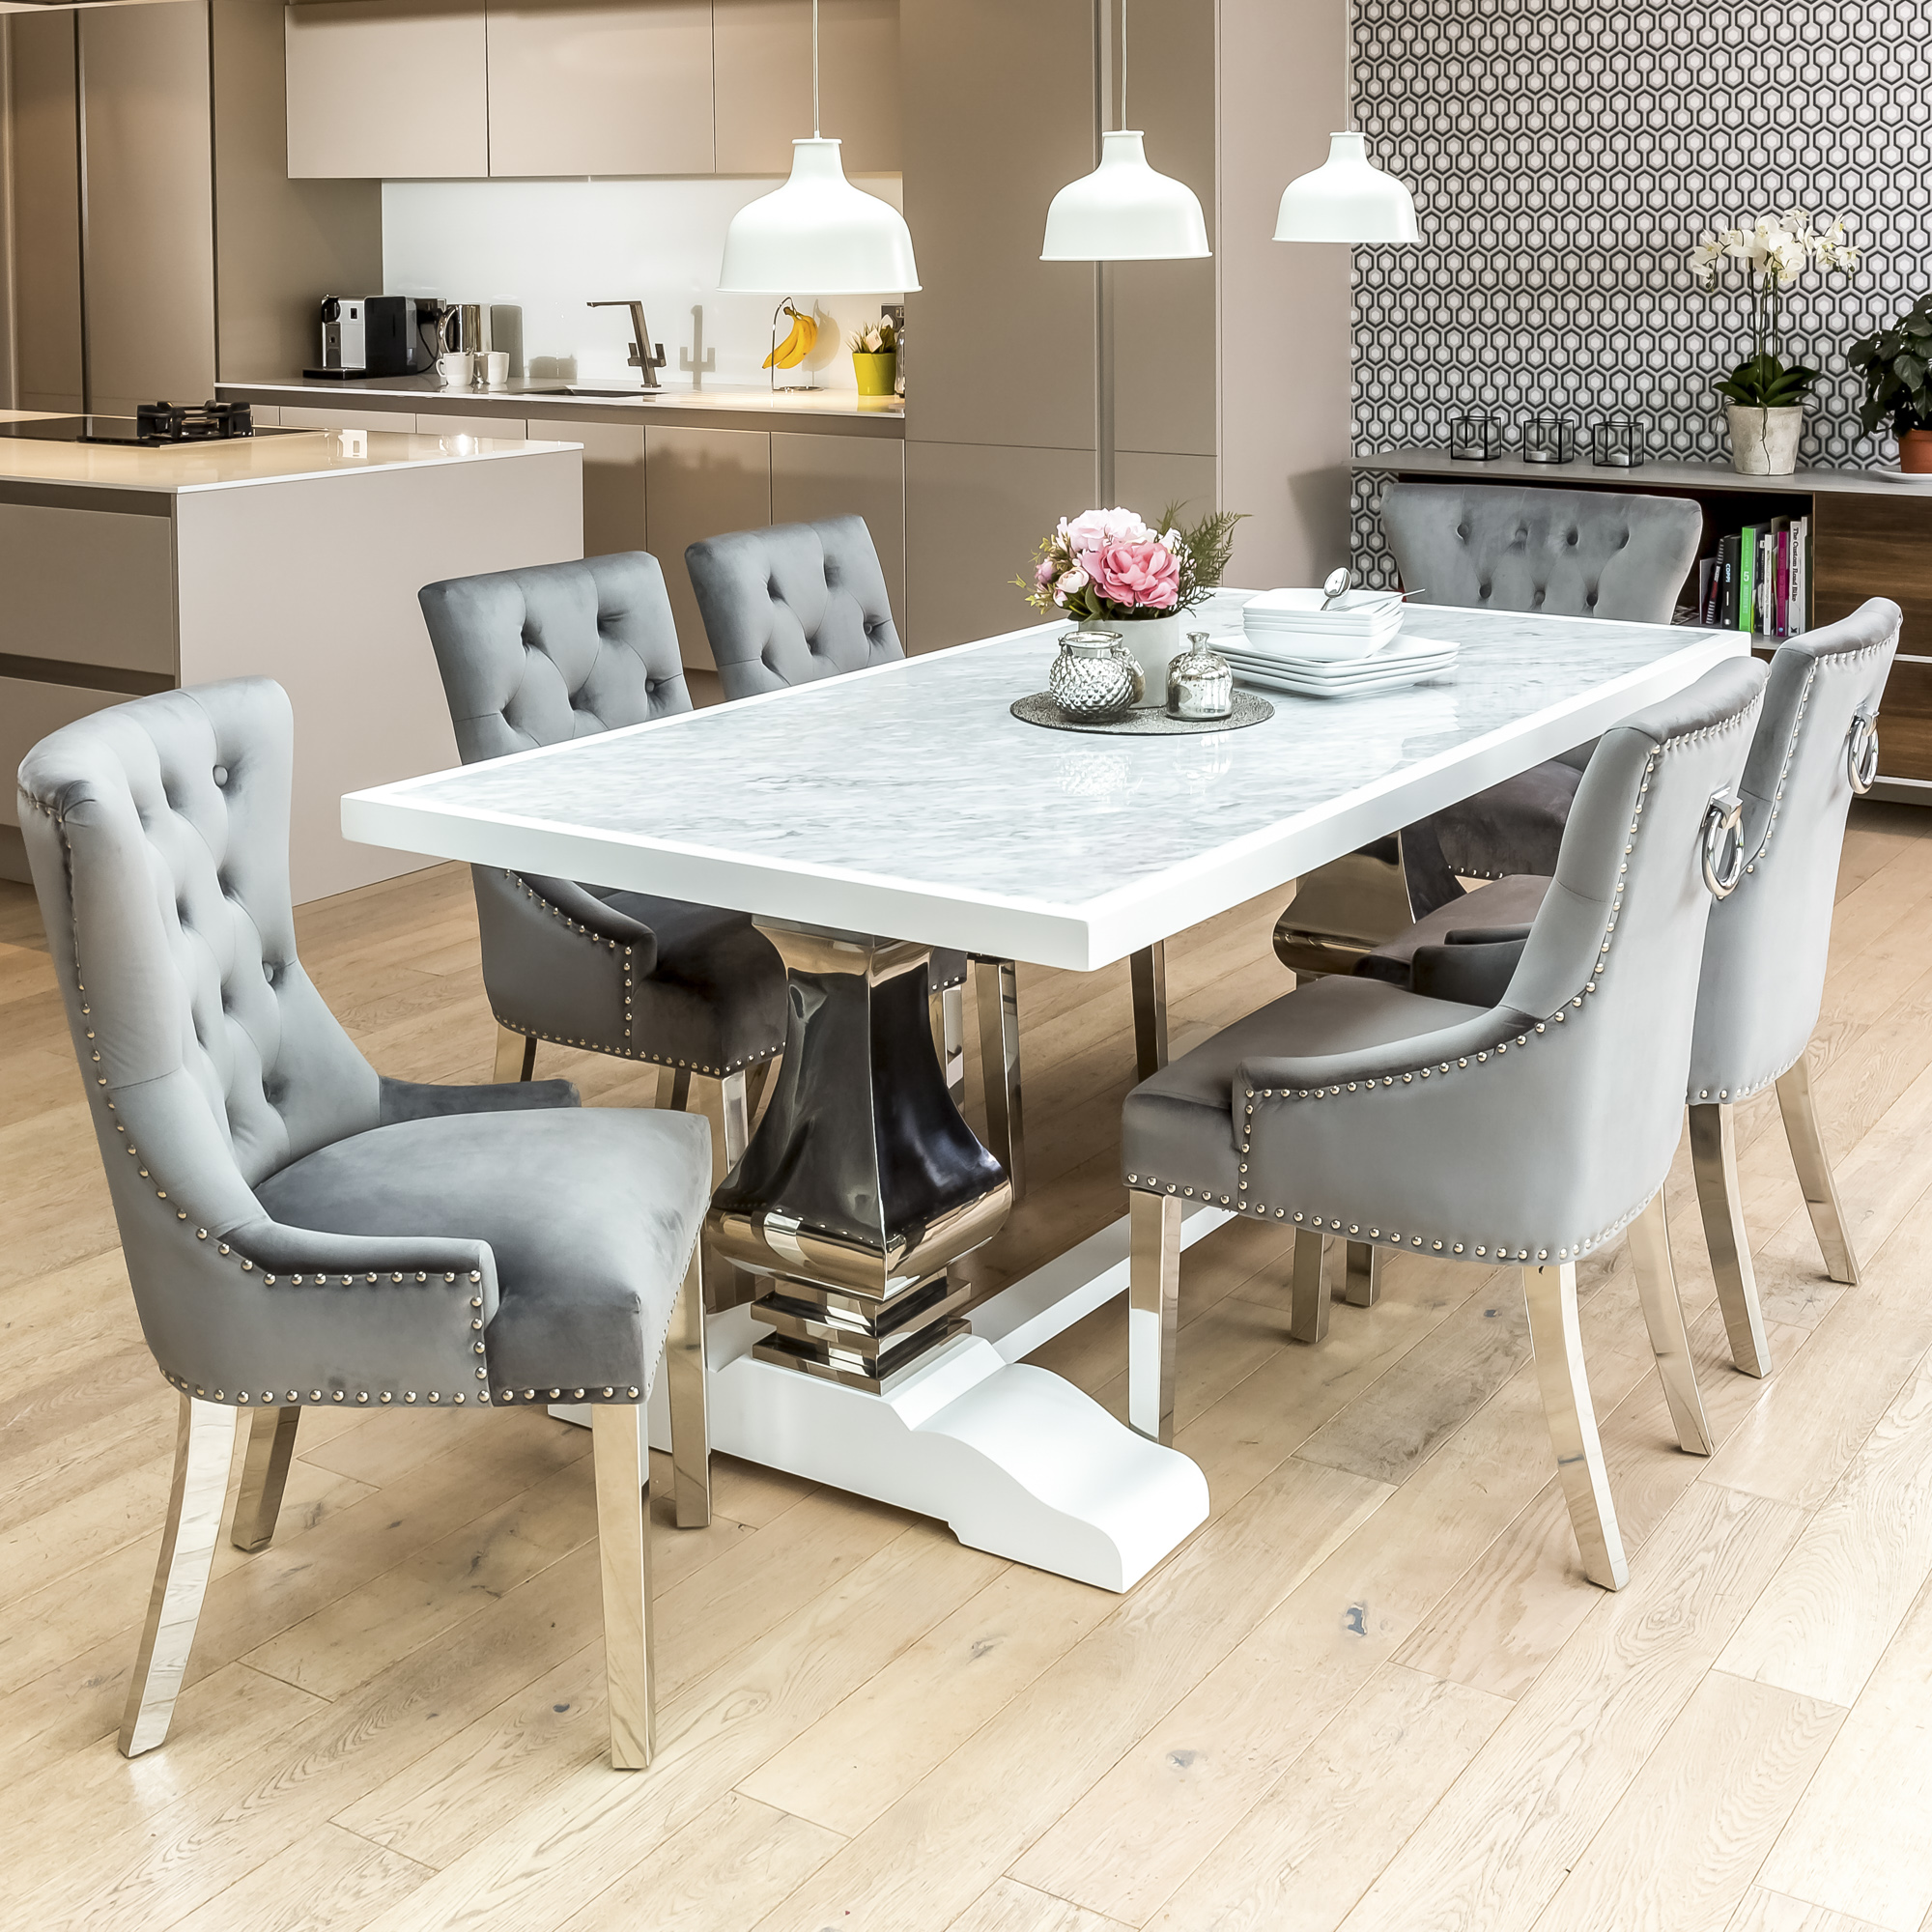 2m Carrara Marble White Dining Table with 6 Grey Brushed Velvet Dining Chairs